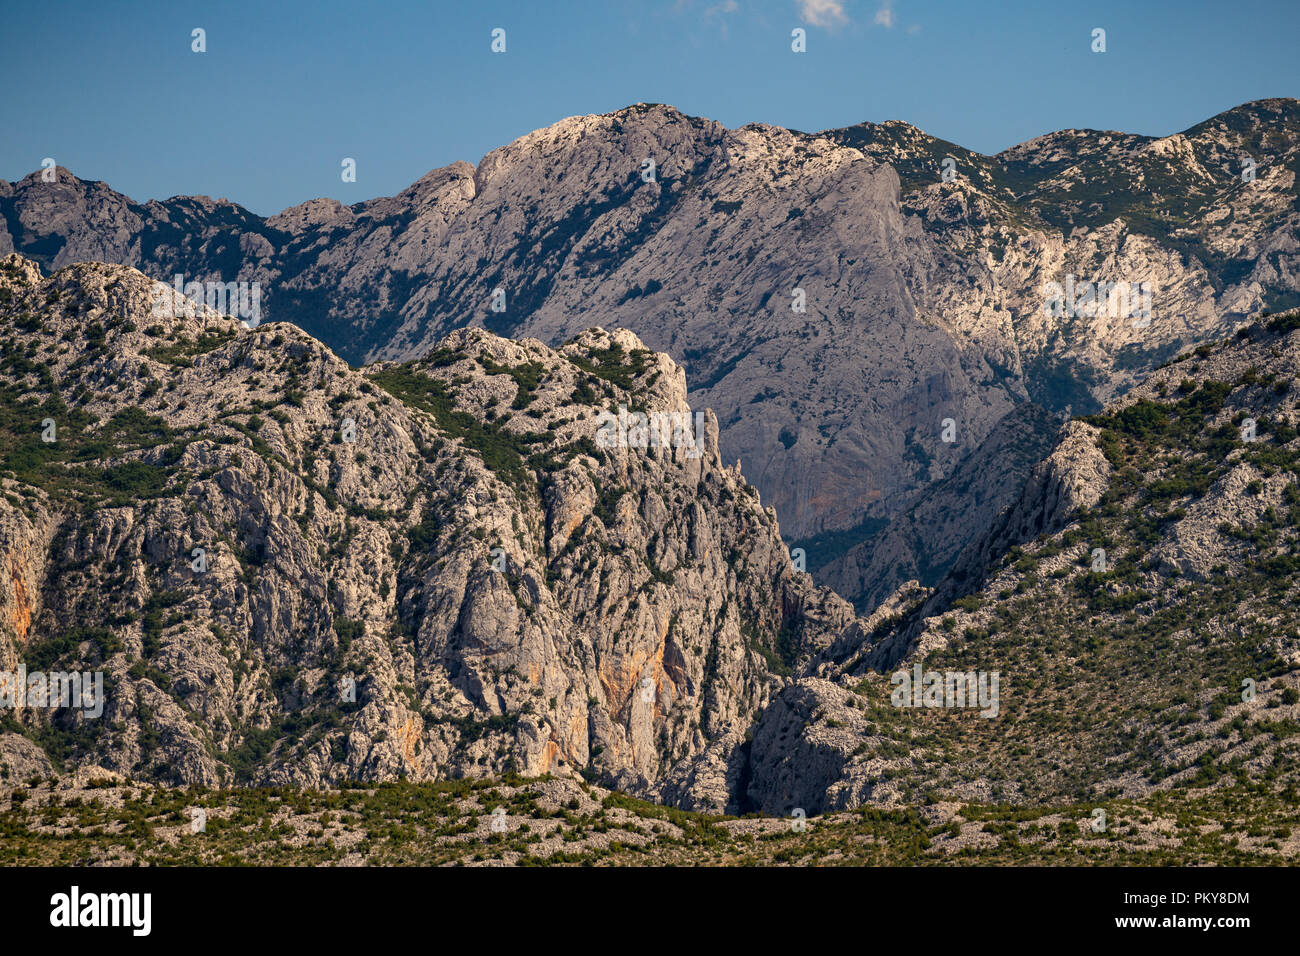 Extreme mountains in Paklenica National Park, Velebit, Croatia Stock Photo